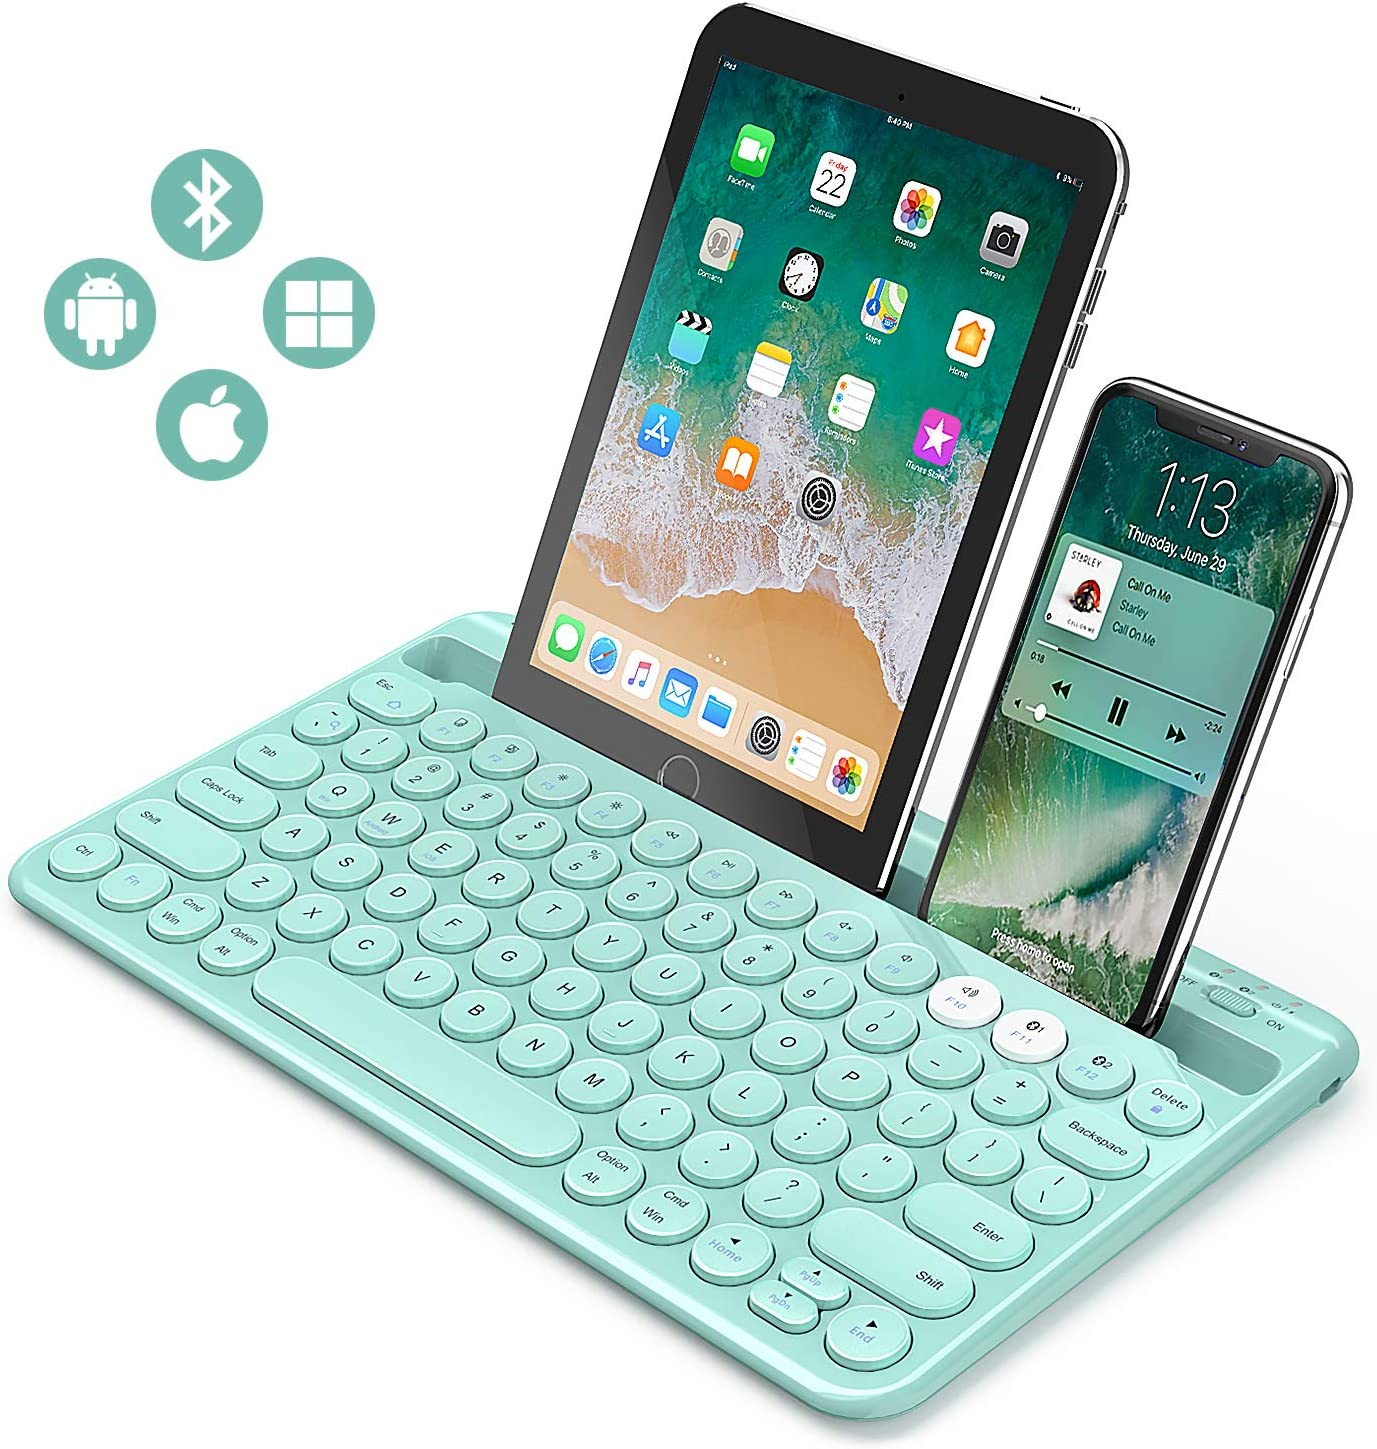 Teclado Bluetooth, Jelly Peb multidispositivo Universal Bluetooth ...